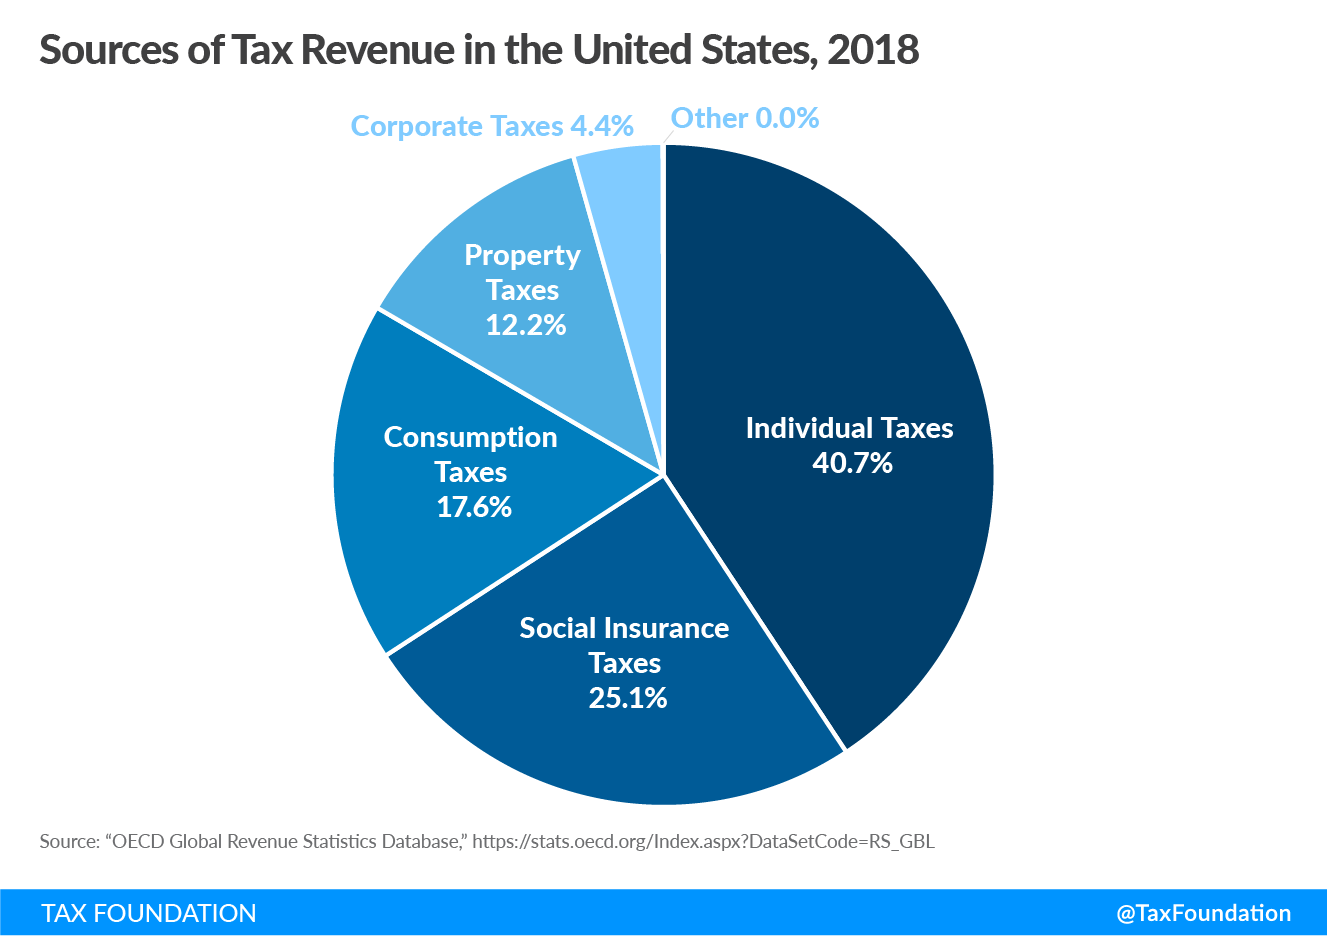 Sources of Tax Revenue in the United States, individual income tax